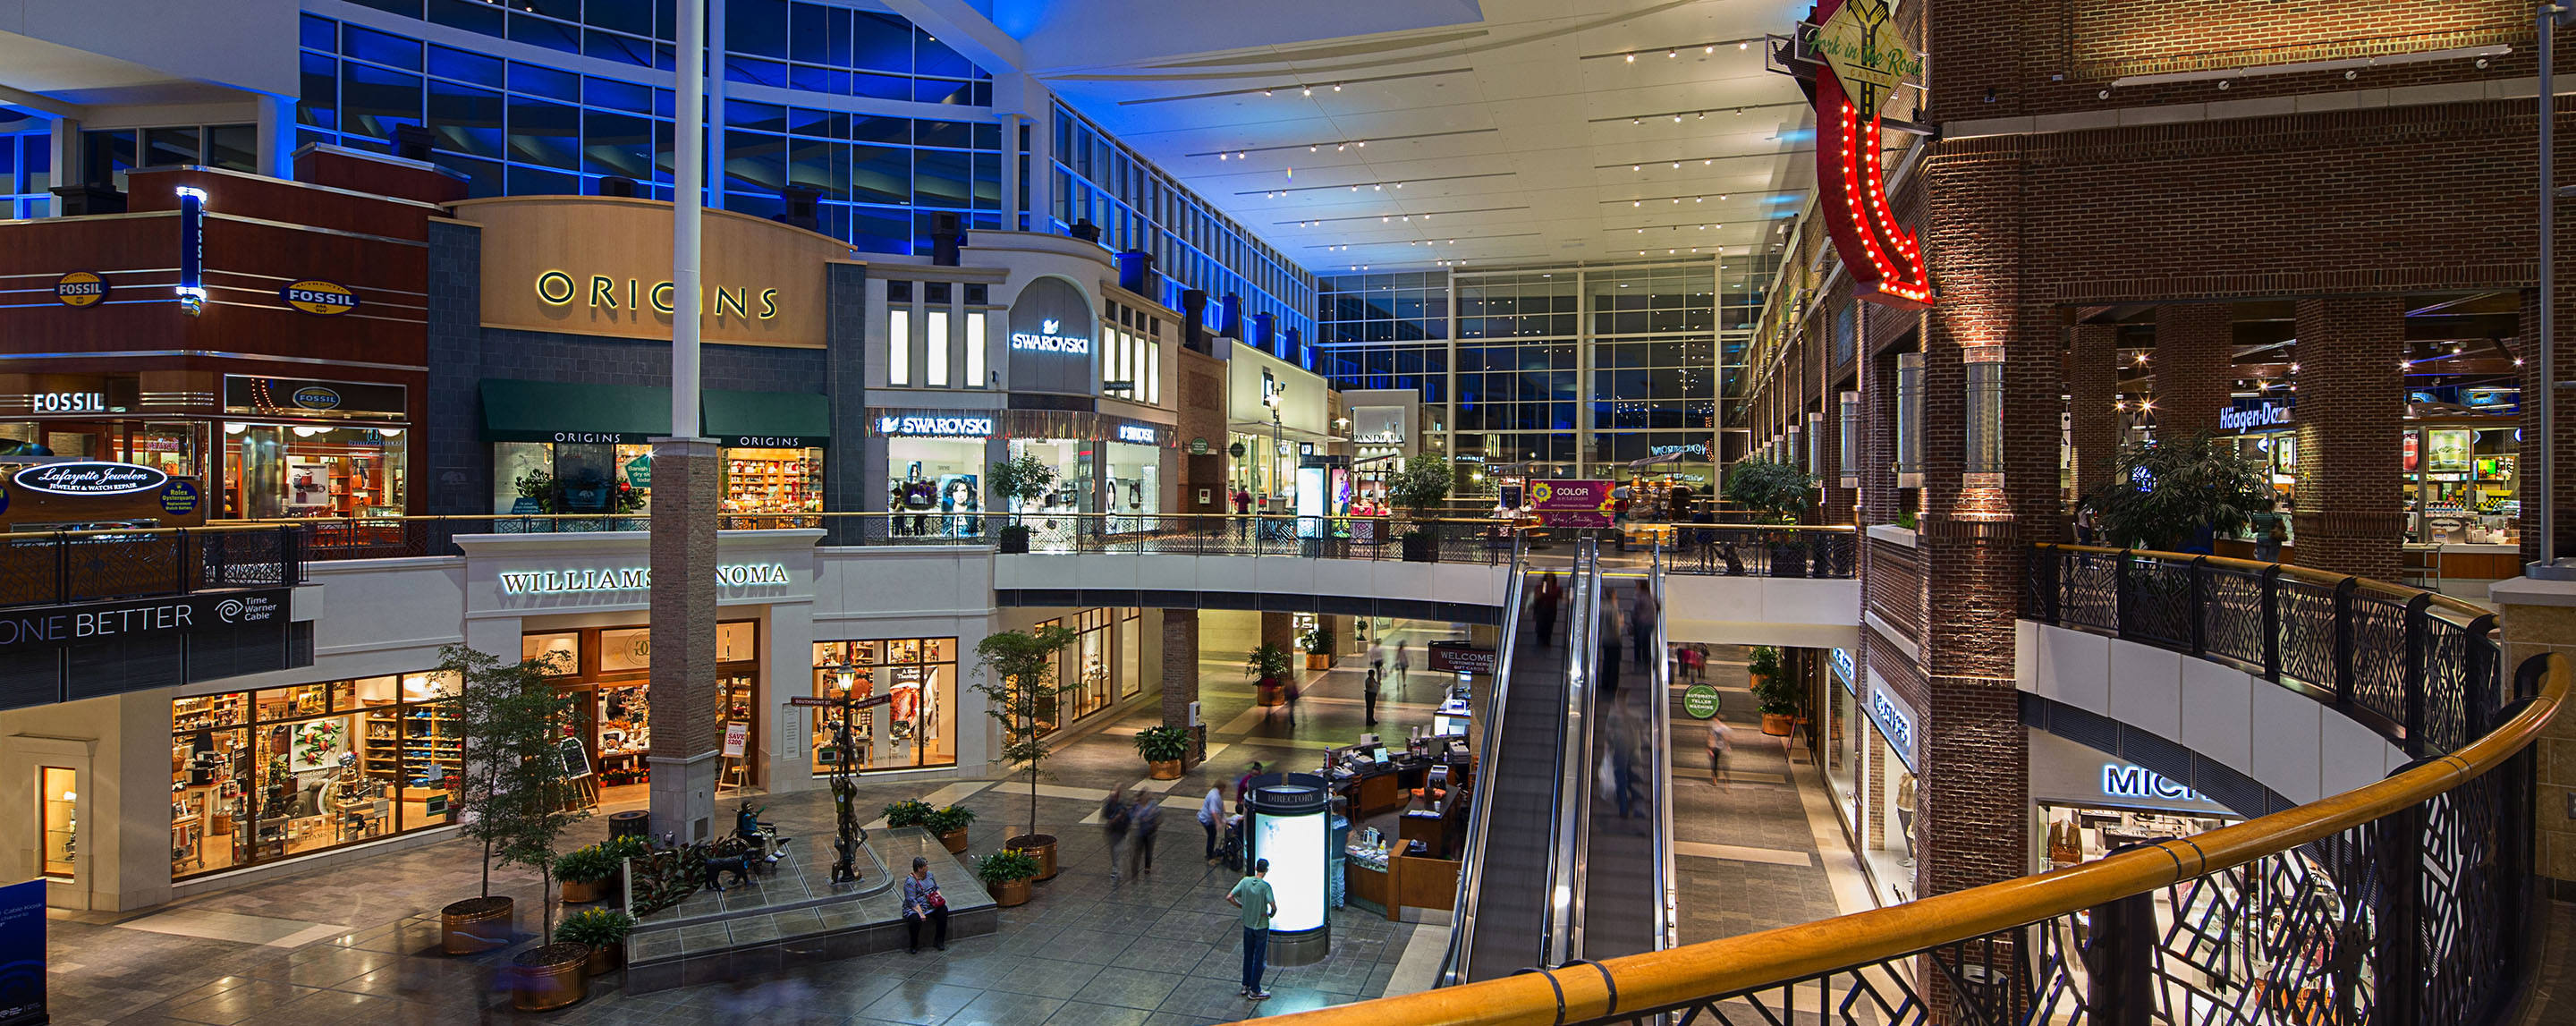 The interior of The Streets at Southpoint is shown from the second floor as shoppers can be seen strolling throughout the mall.